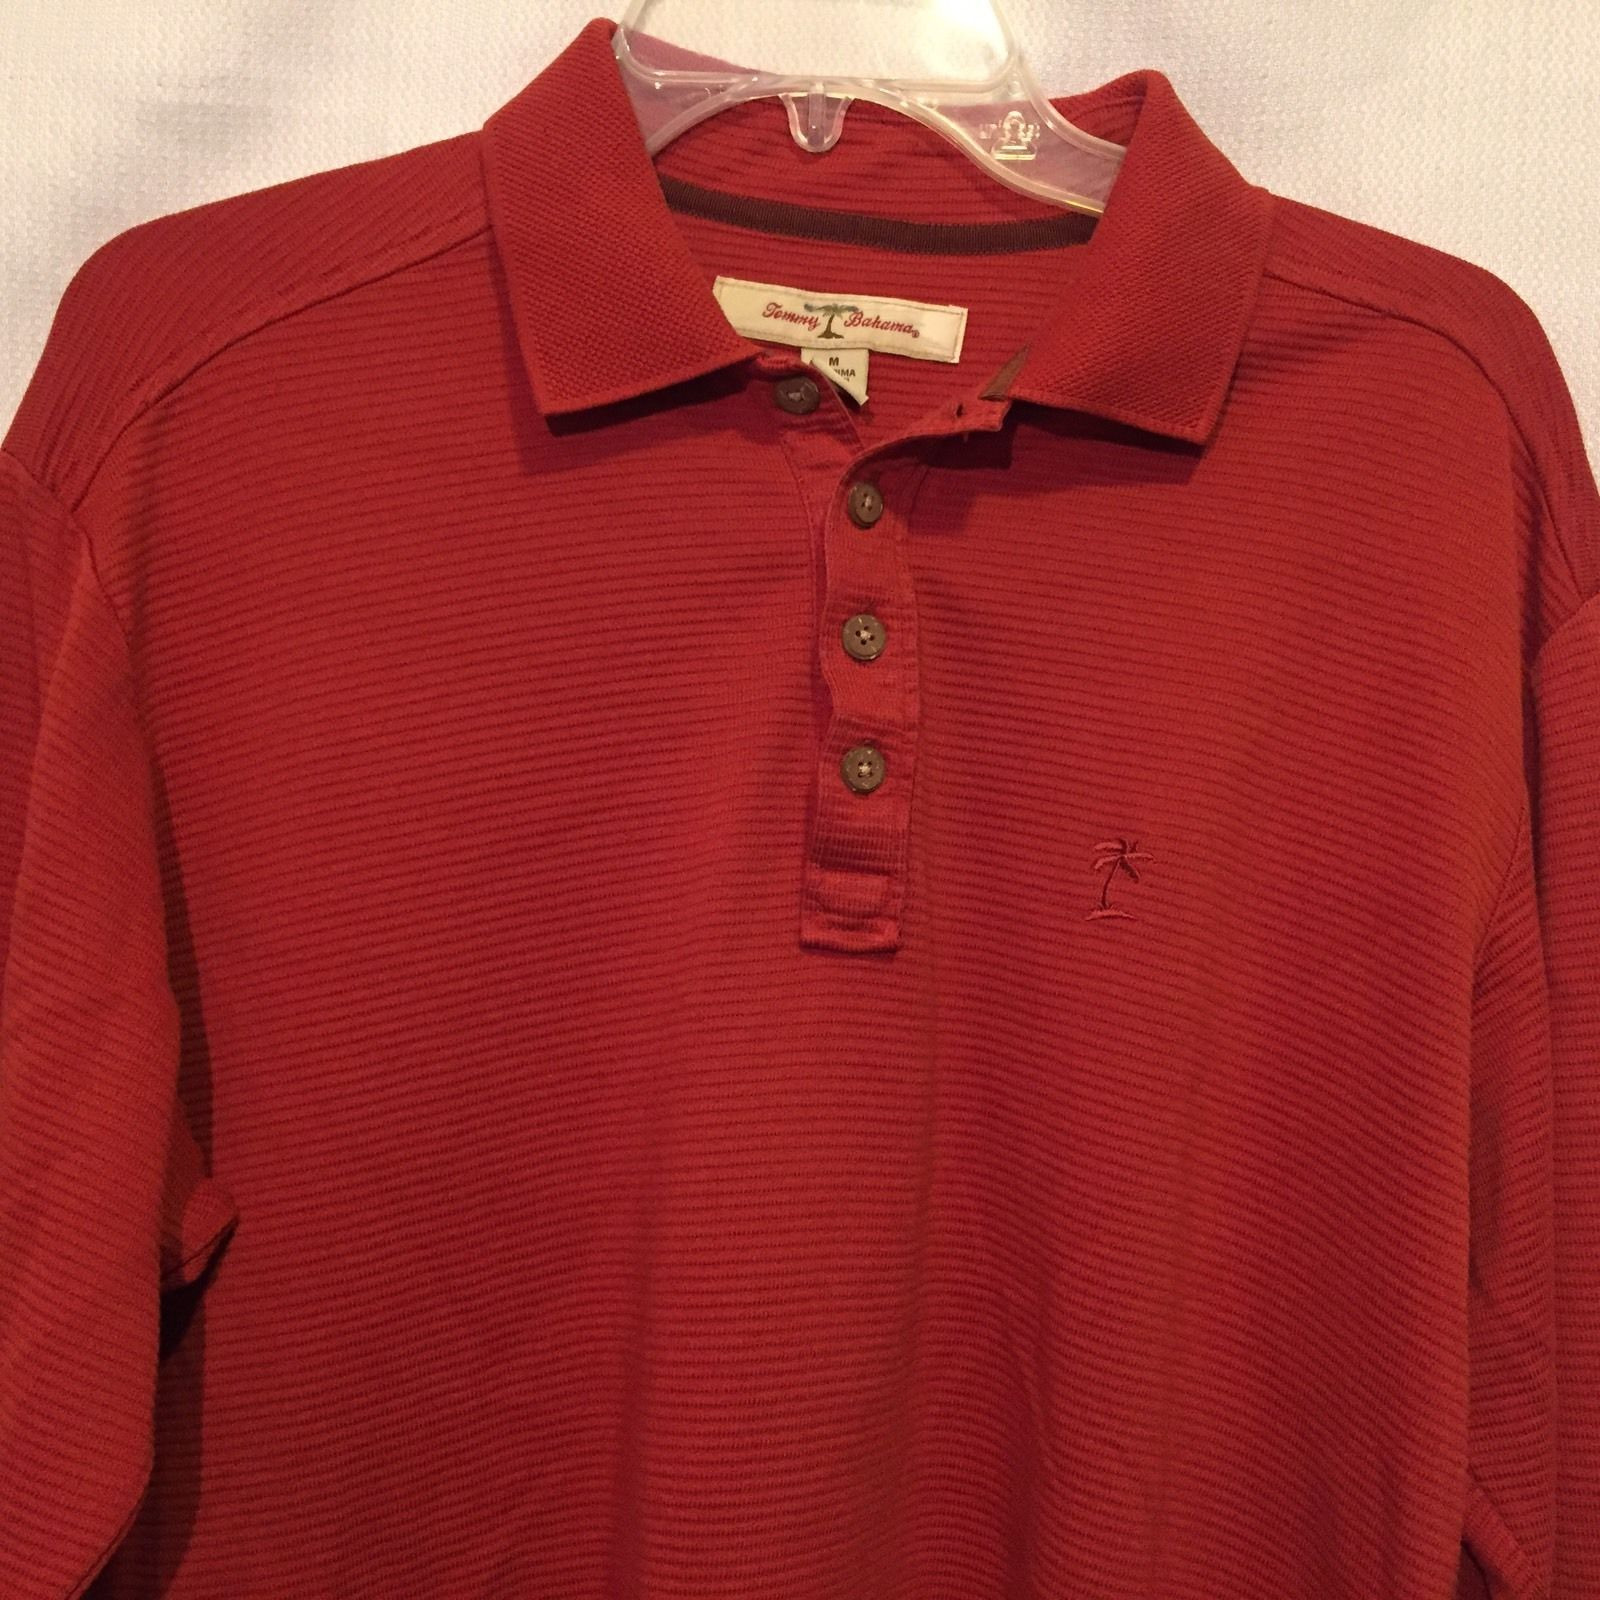 7f6c8510 TOMMY BAHAMA Long Sleeve Polo Shirt Size and 35 similar items. S l1600